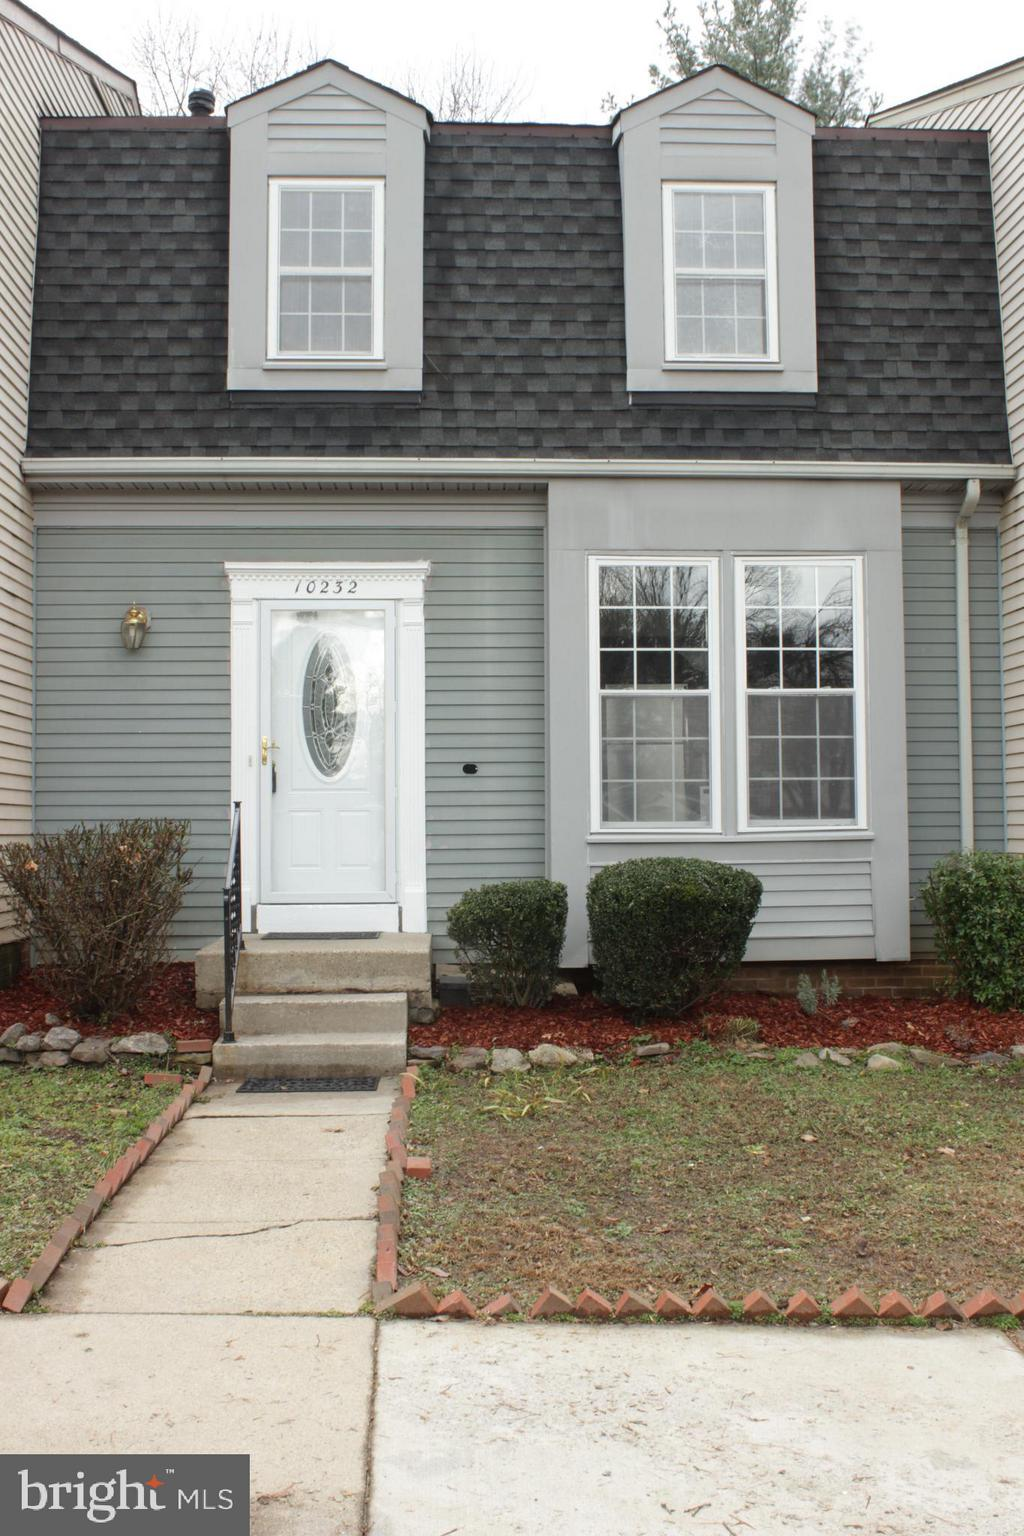 """Location"""" location"""" location"""" 3 level townhouse, 3 bedrooms, 3.5 baths, close to everything, Robinson school district, GMU, VRE,shopping's, and restaurants, updated throughout,laminated floor in living room and kitchen, new granite counter top, kitchen floor, appliances, pantry,freshly painted, master bedroom suite w/huge walking-in closet,finished walk-out basement w/large room, w/fireplace & full bathroom w/luxurious hot tub & closet, great deck & patio for entertaining family & friends.  don't miss out this opportunity, won't last long,  move-in condition."""